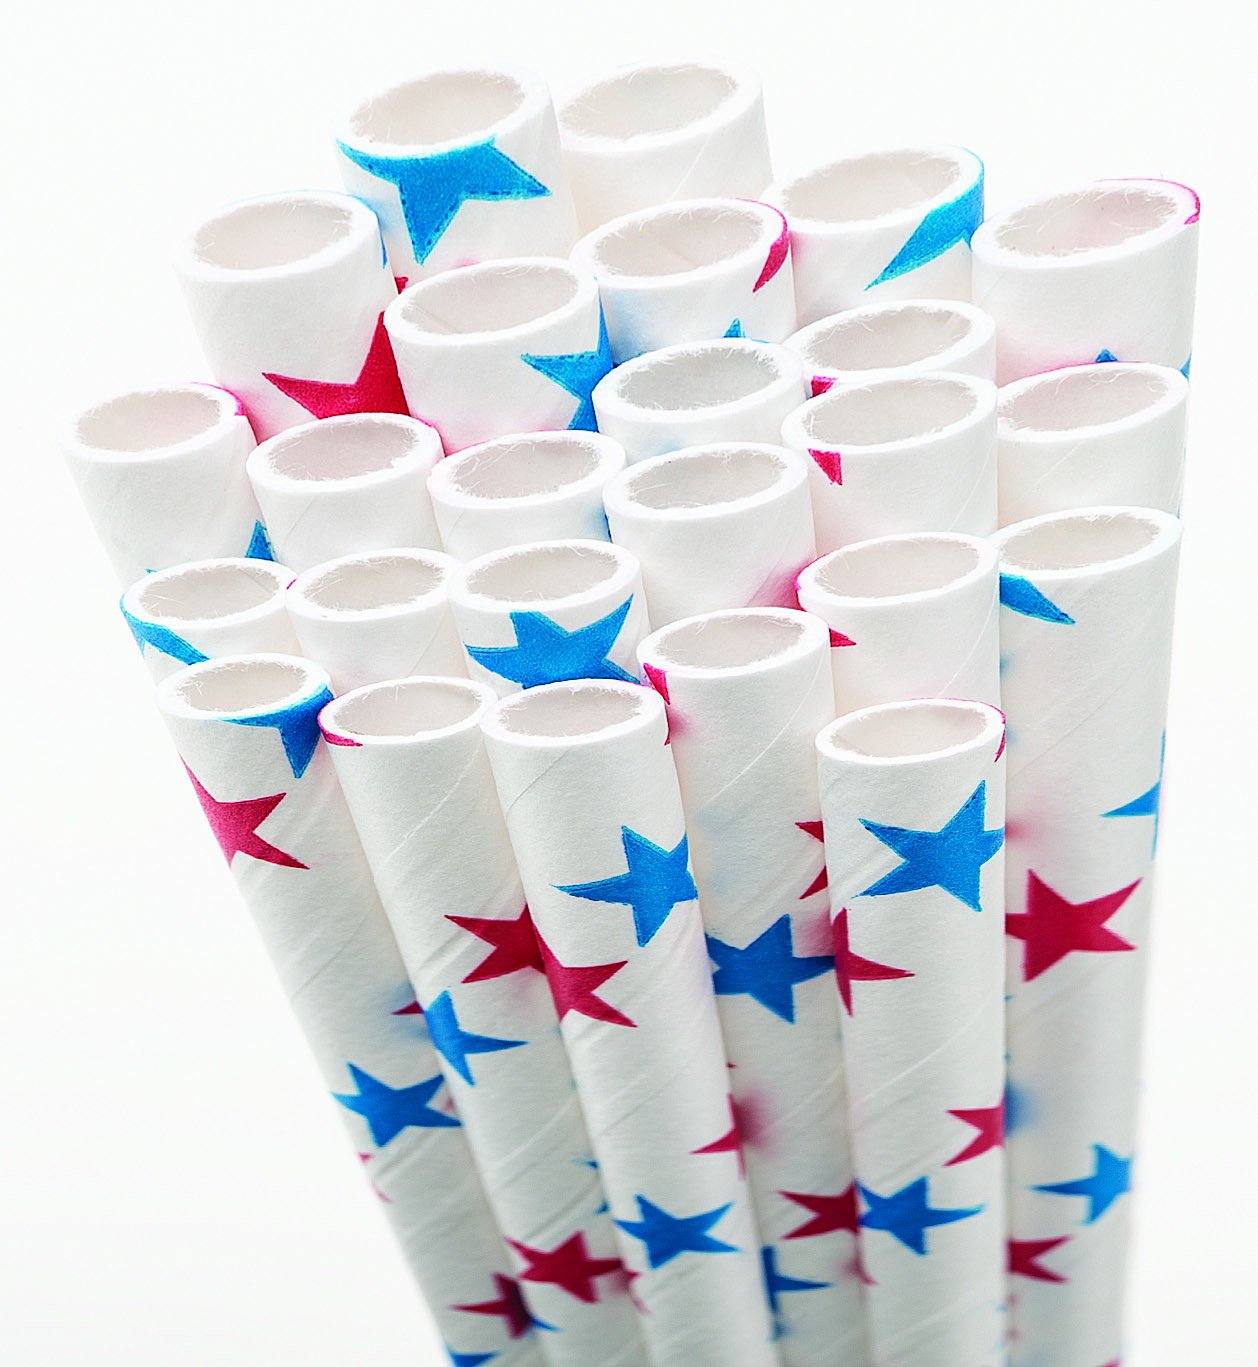 Aardvark 61520014 Paper Drinking Straw, 7/32'' Diameter x 7-3/4'' Length, Red and Blue Stars (8 Boxes of 600) by Aardvark Straws